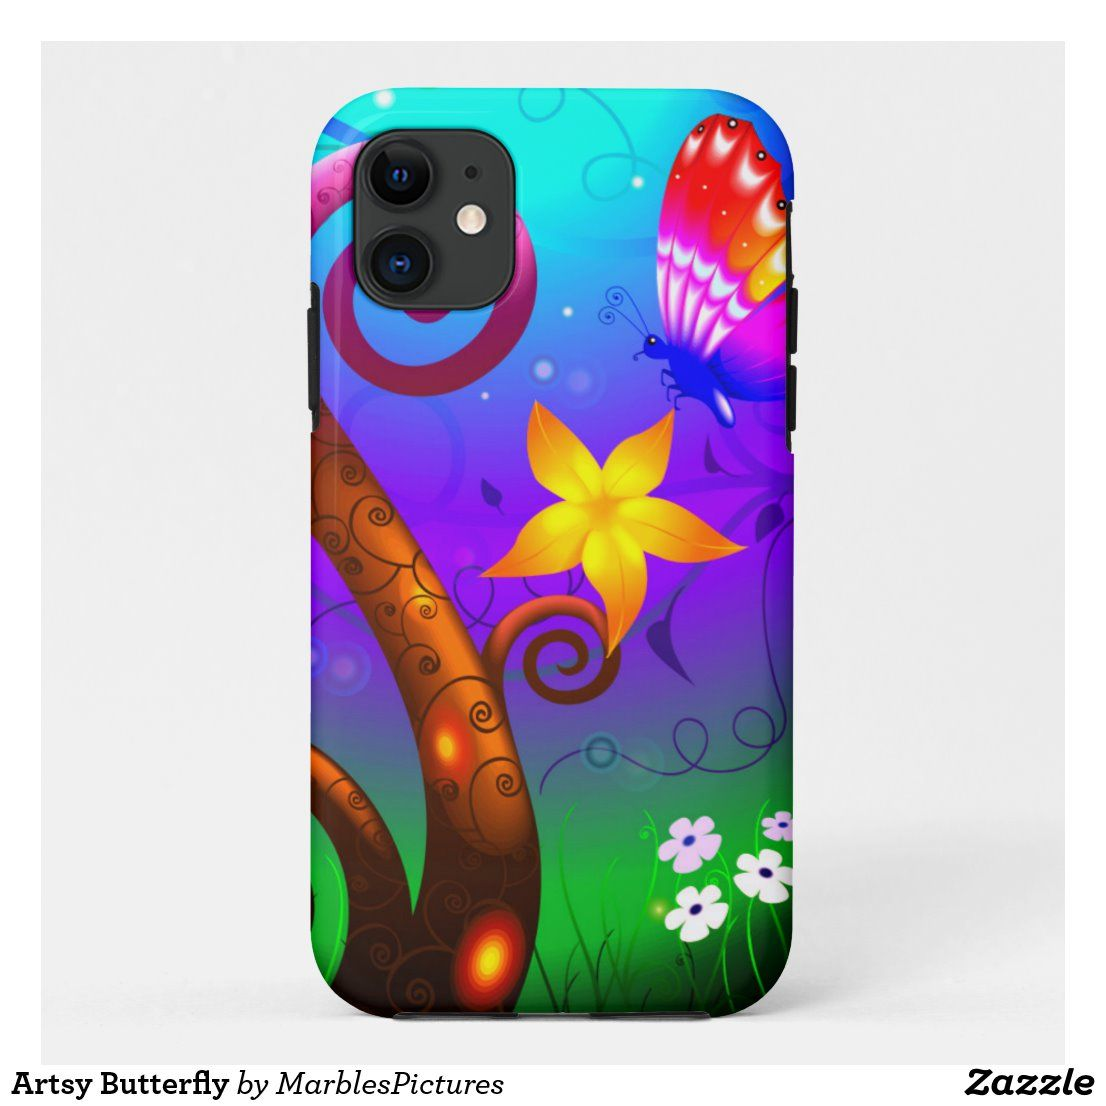 Artsy butterfly casemate iphone case